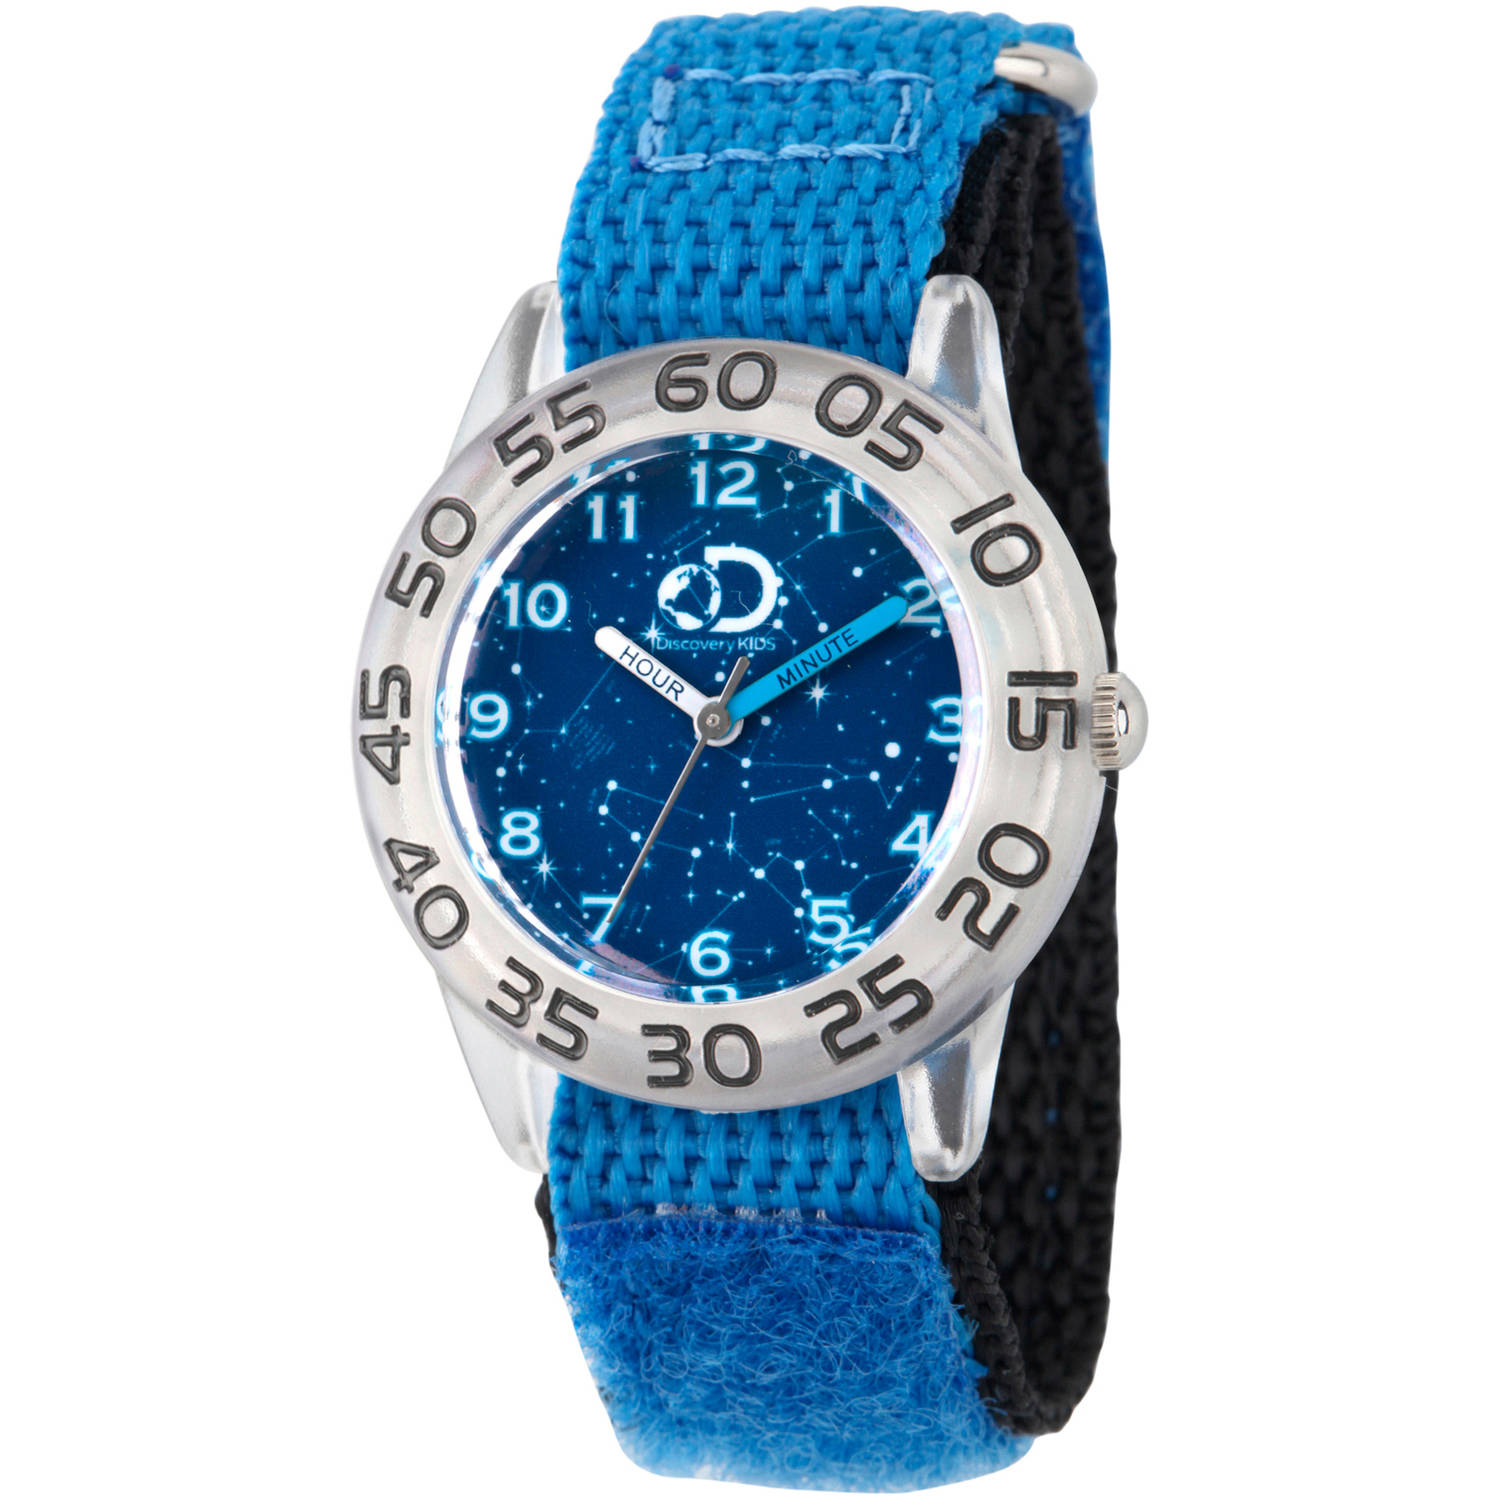 Discovery Channel, Discovery Kids, Galaxy Boys' Clear Plastic Time Teacher Watch, Blue Hook and Loop Nylon Strap with Black Backing